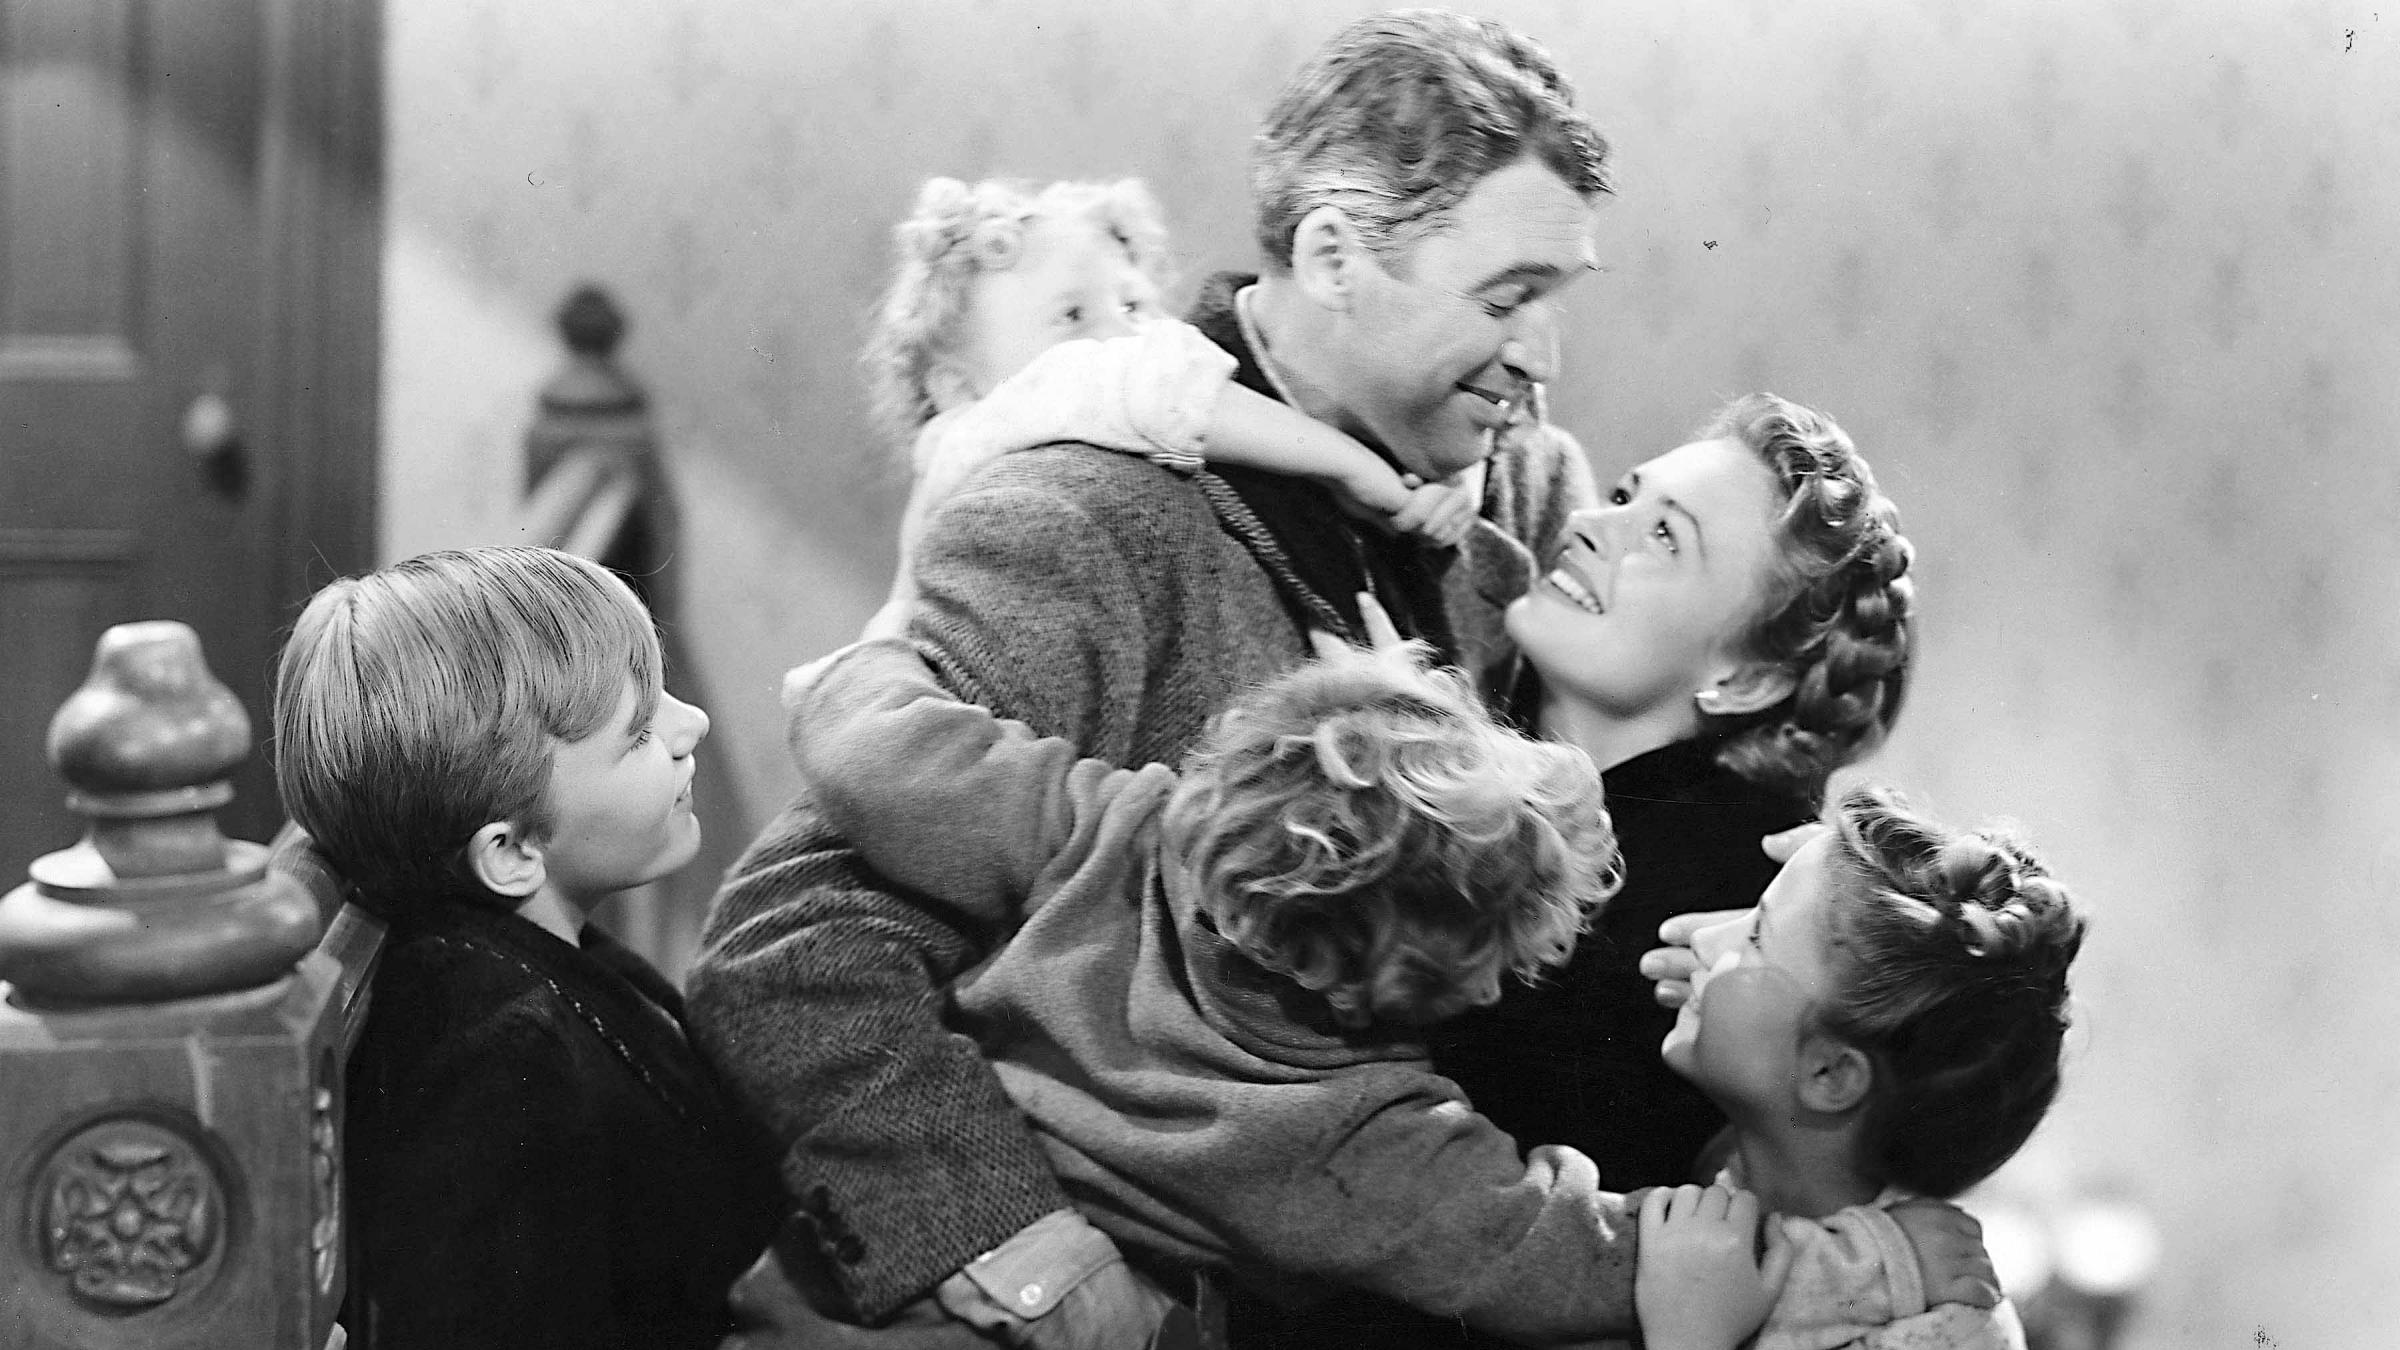 It's a Wonderful Life has been voted as Britain's favourite Christmas film in a Radio Times poll